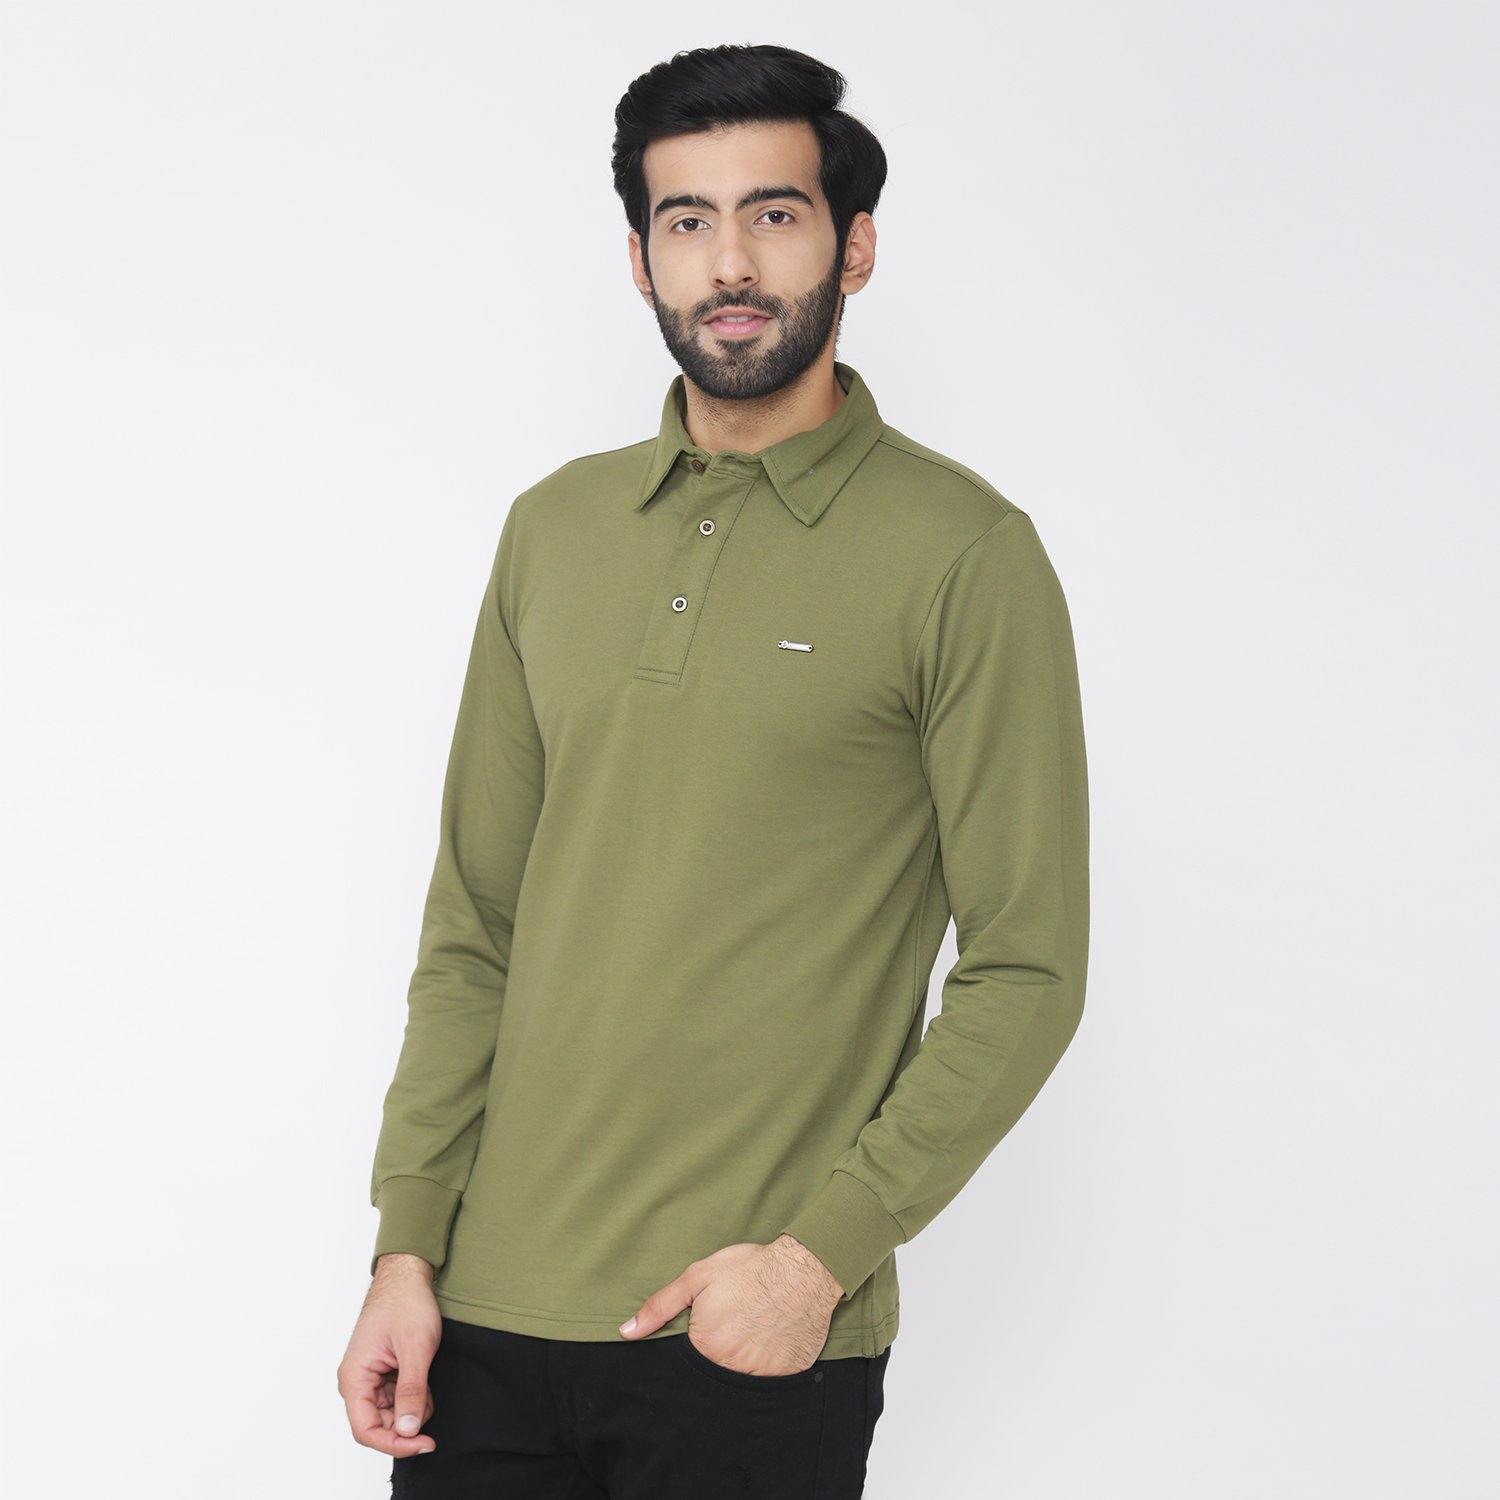 Men's Plain Winter Wear Polo Sweatshirt - Evergreen